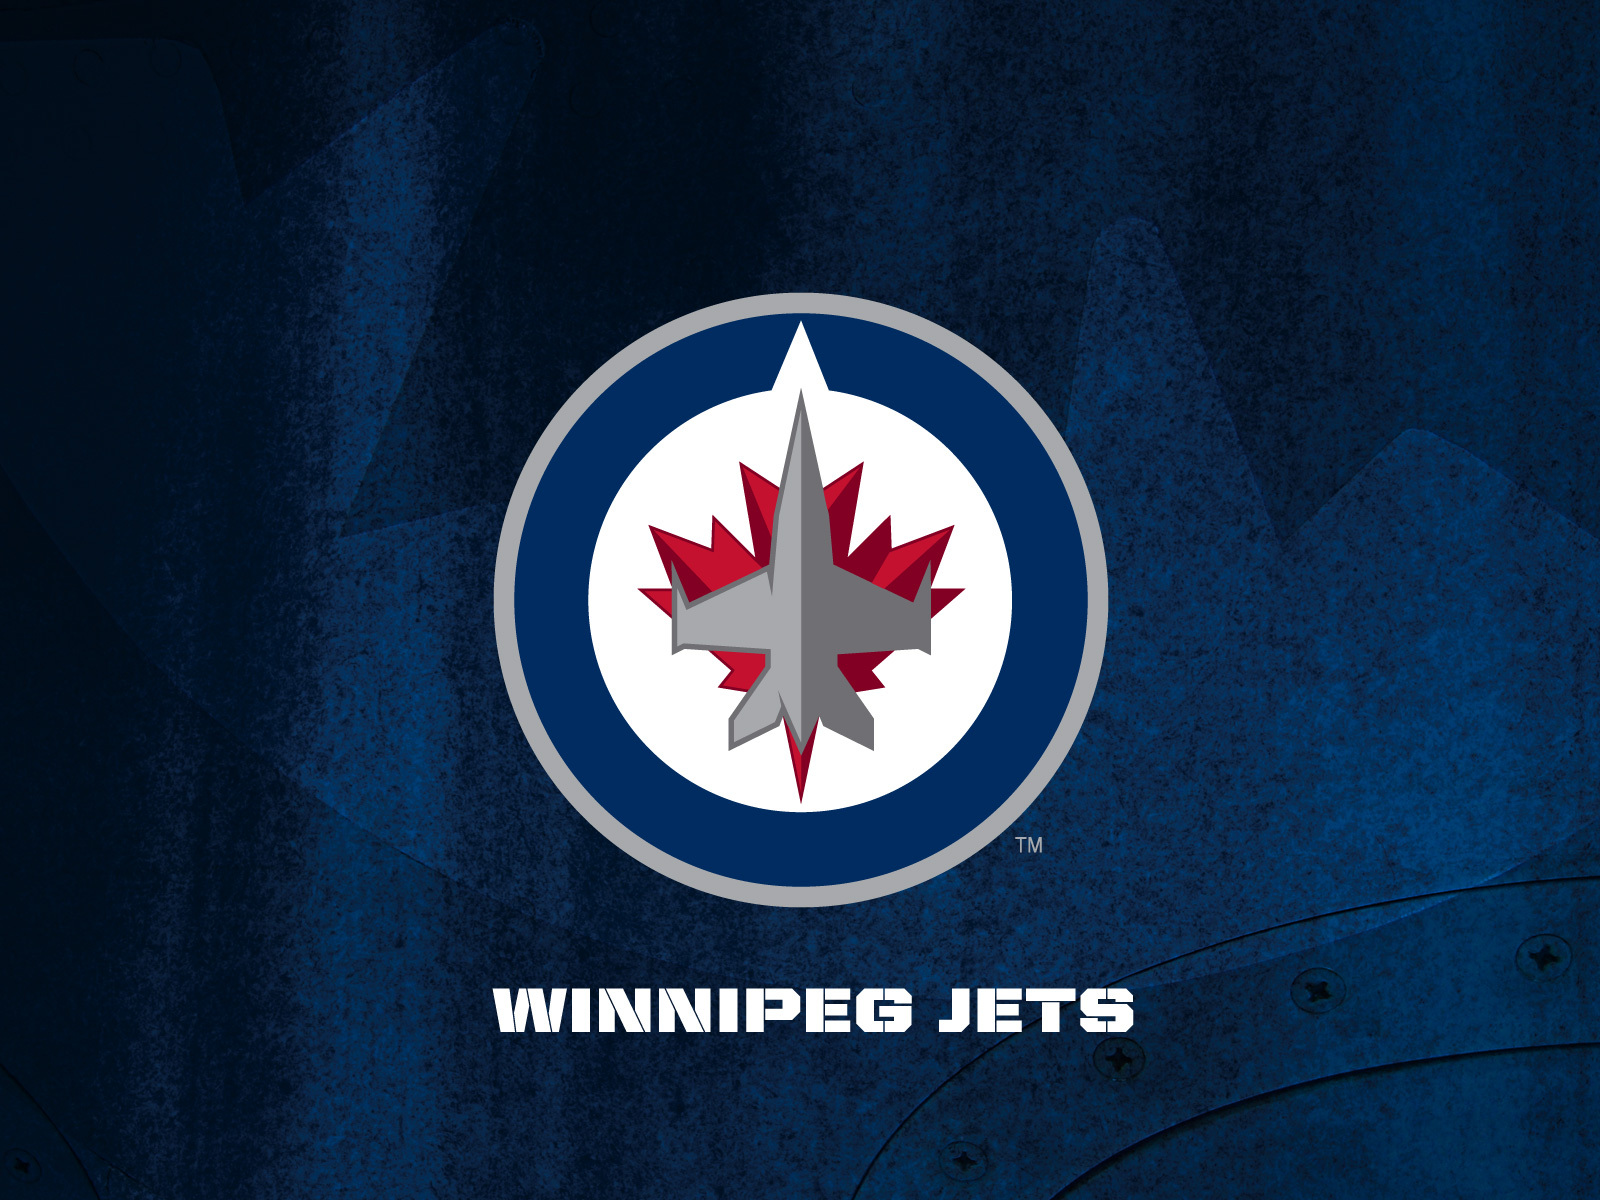 76] Winnipeg Jets Wallpaper on WallpaperSafari 1600x1200